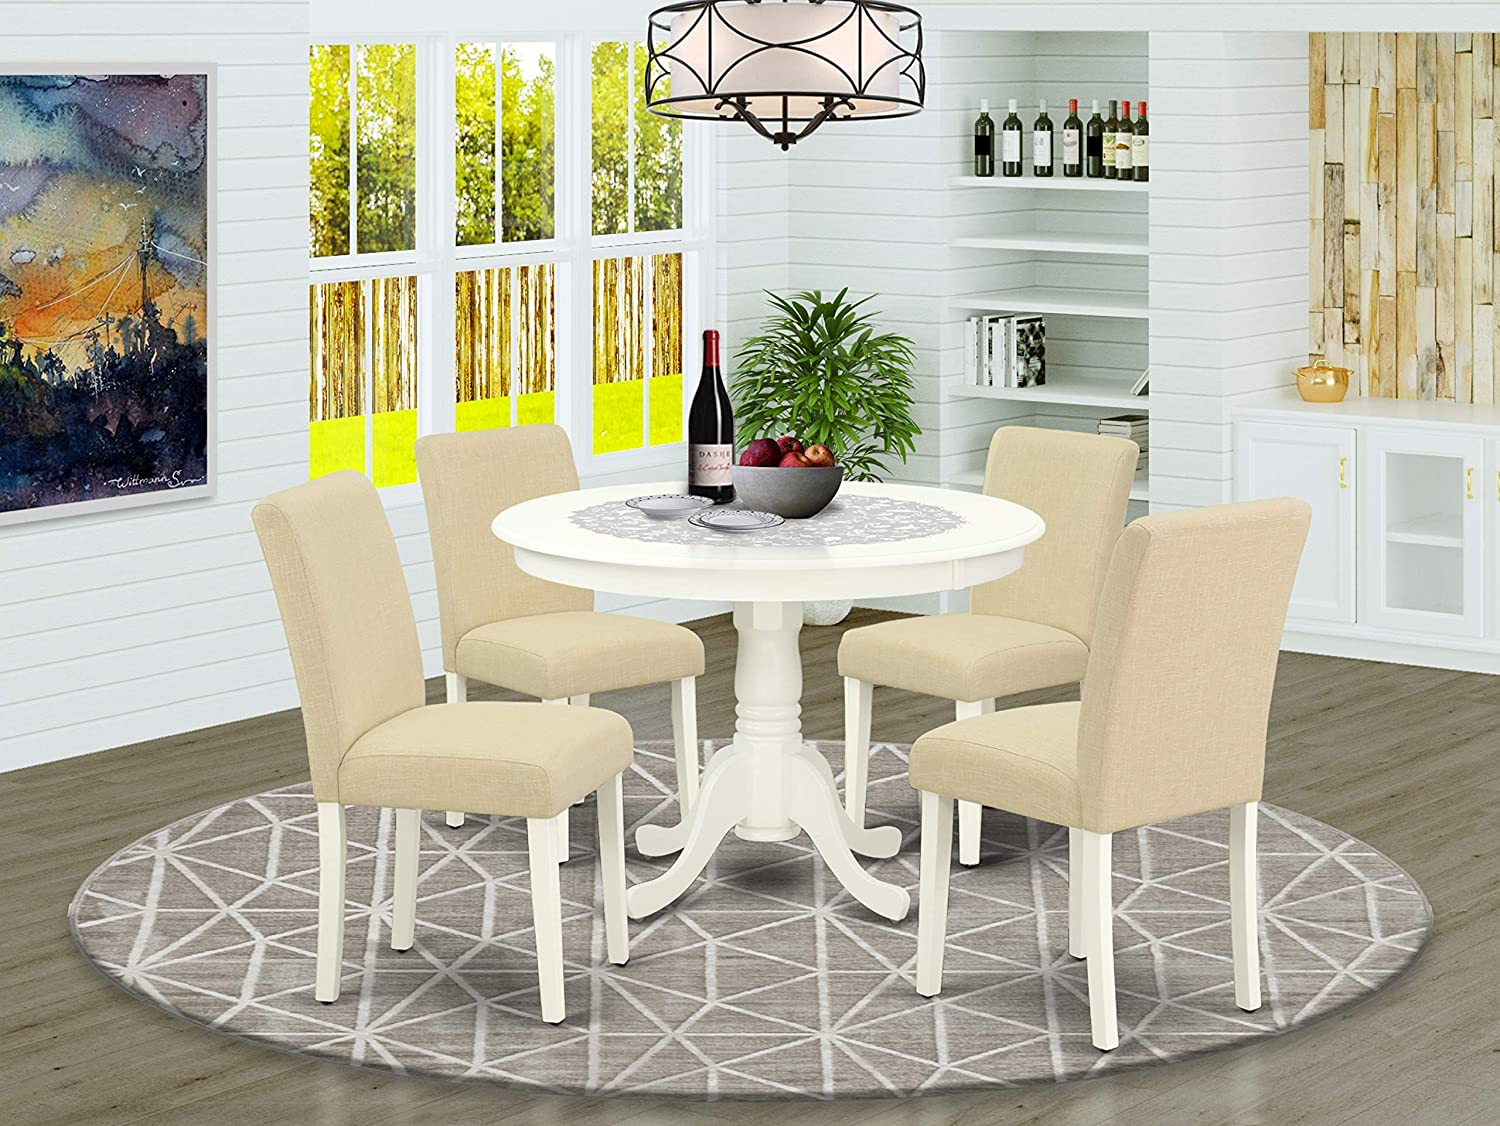 5Pc Round 42 Inch Dinette Table And Four Parson Chair With Linen White Leg And Linen Fabric Light Beige